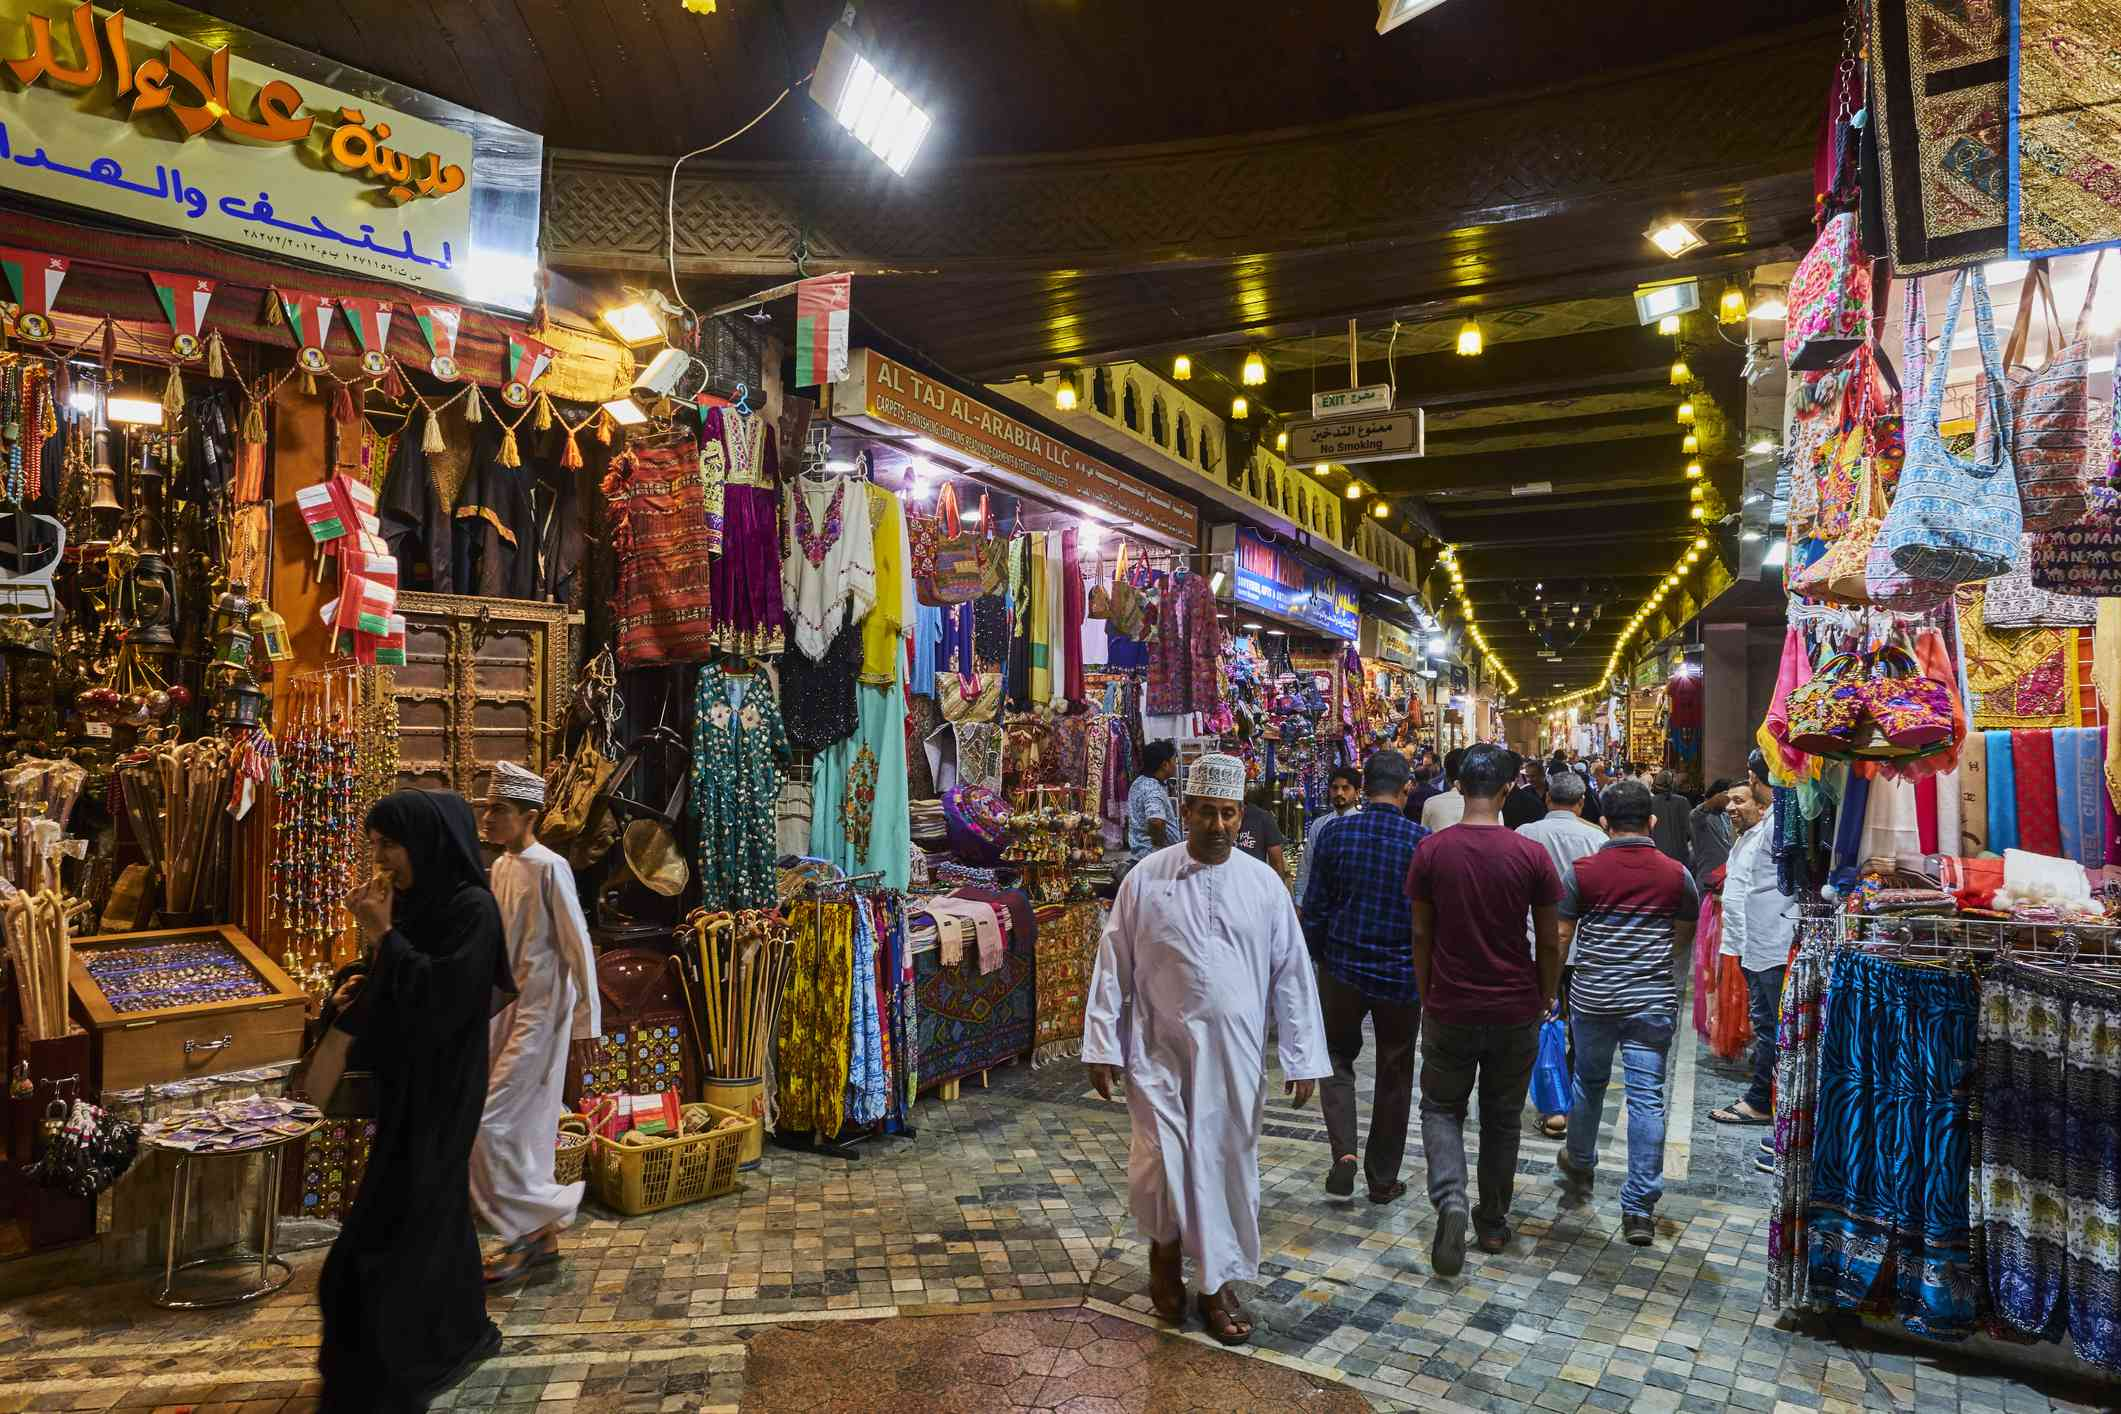 People walking through a traditional market in Muscat, Oman